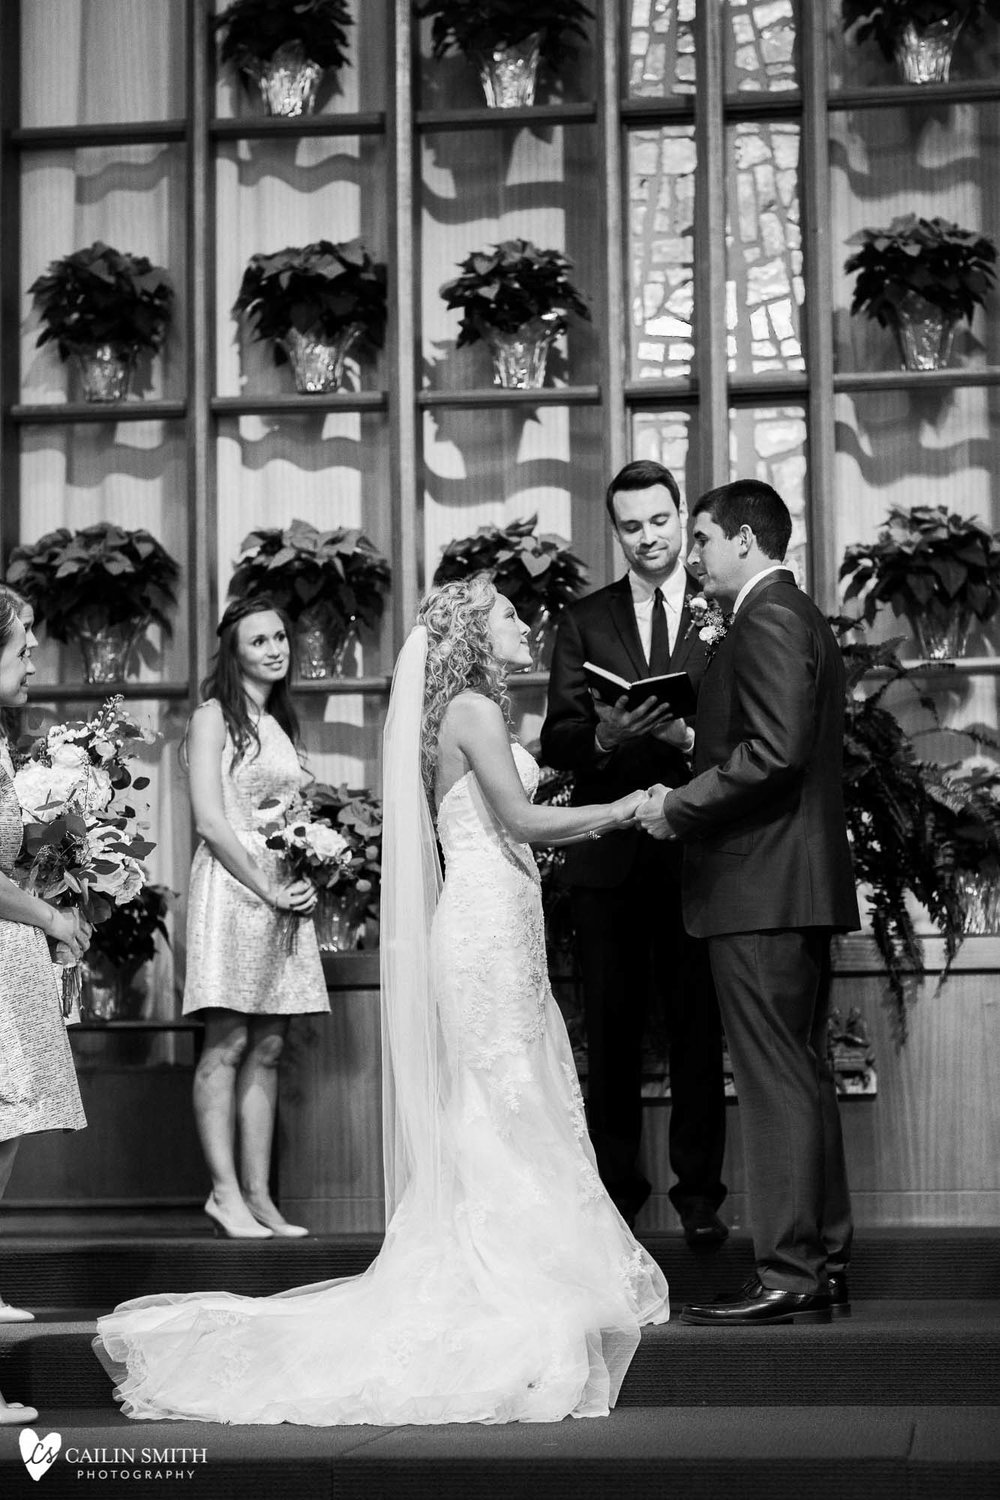 Leah_Major_St_Marys_Wedding_Photography_077.jpg